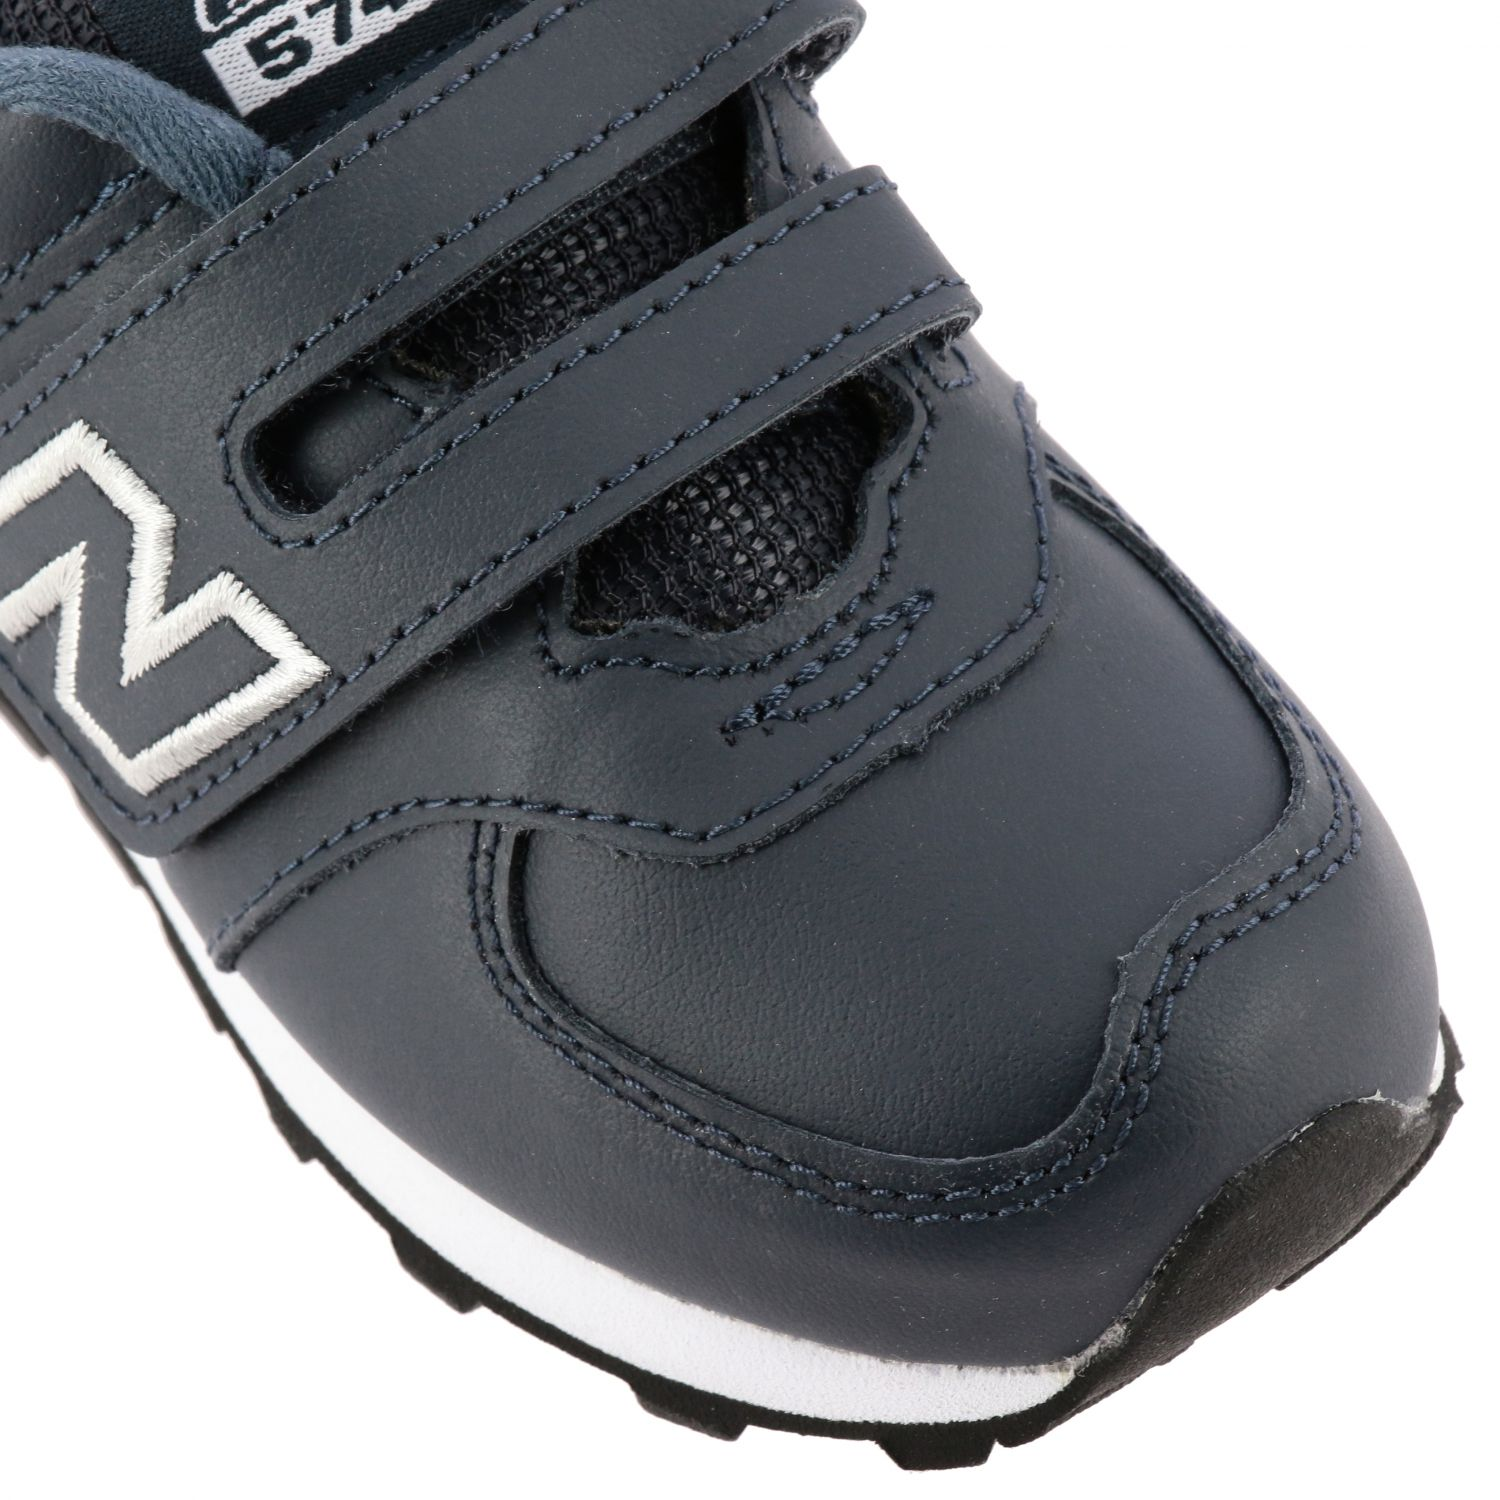 Shoes kids New Balance blue 4